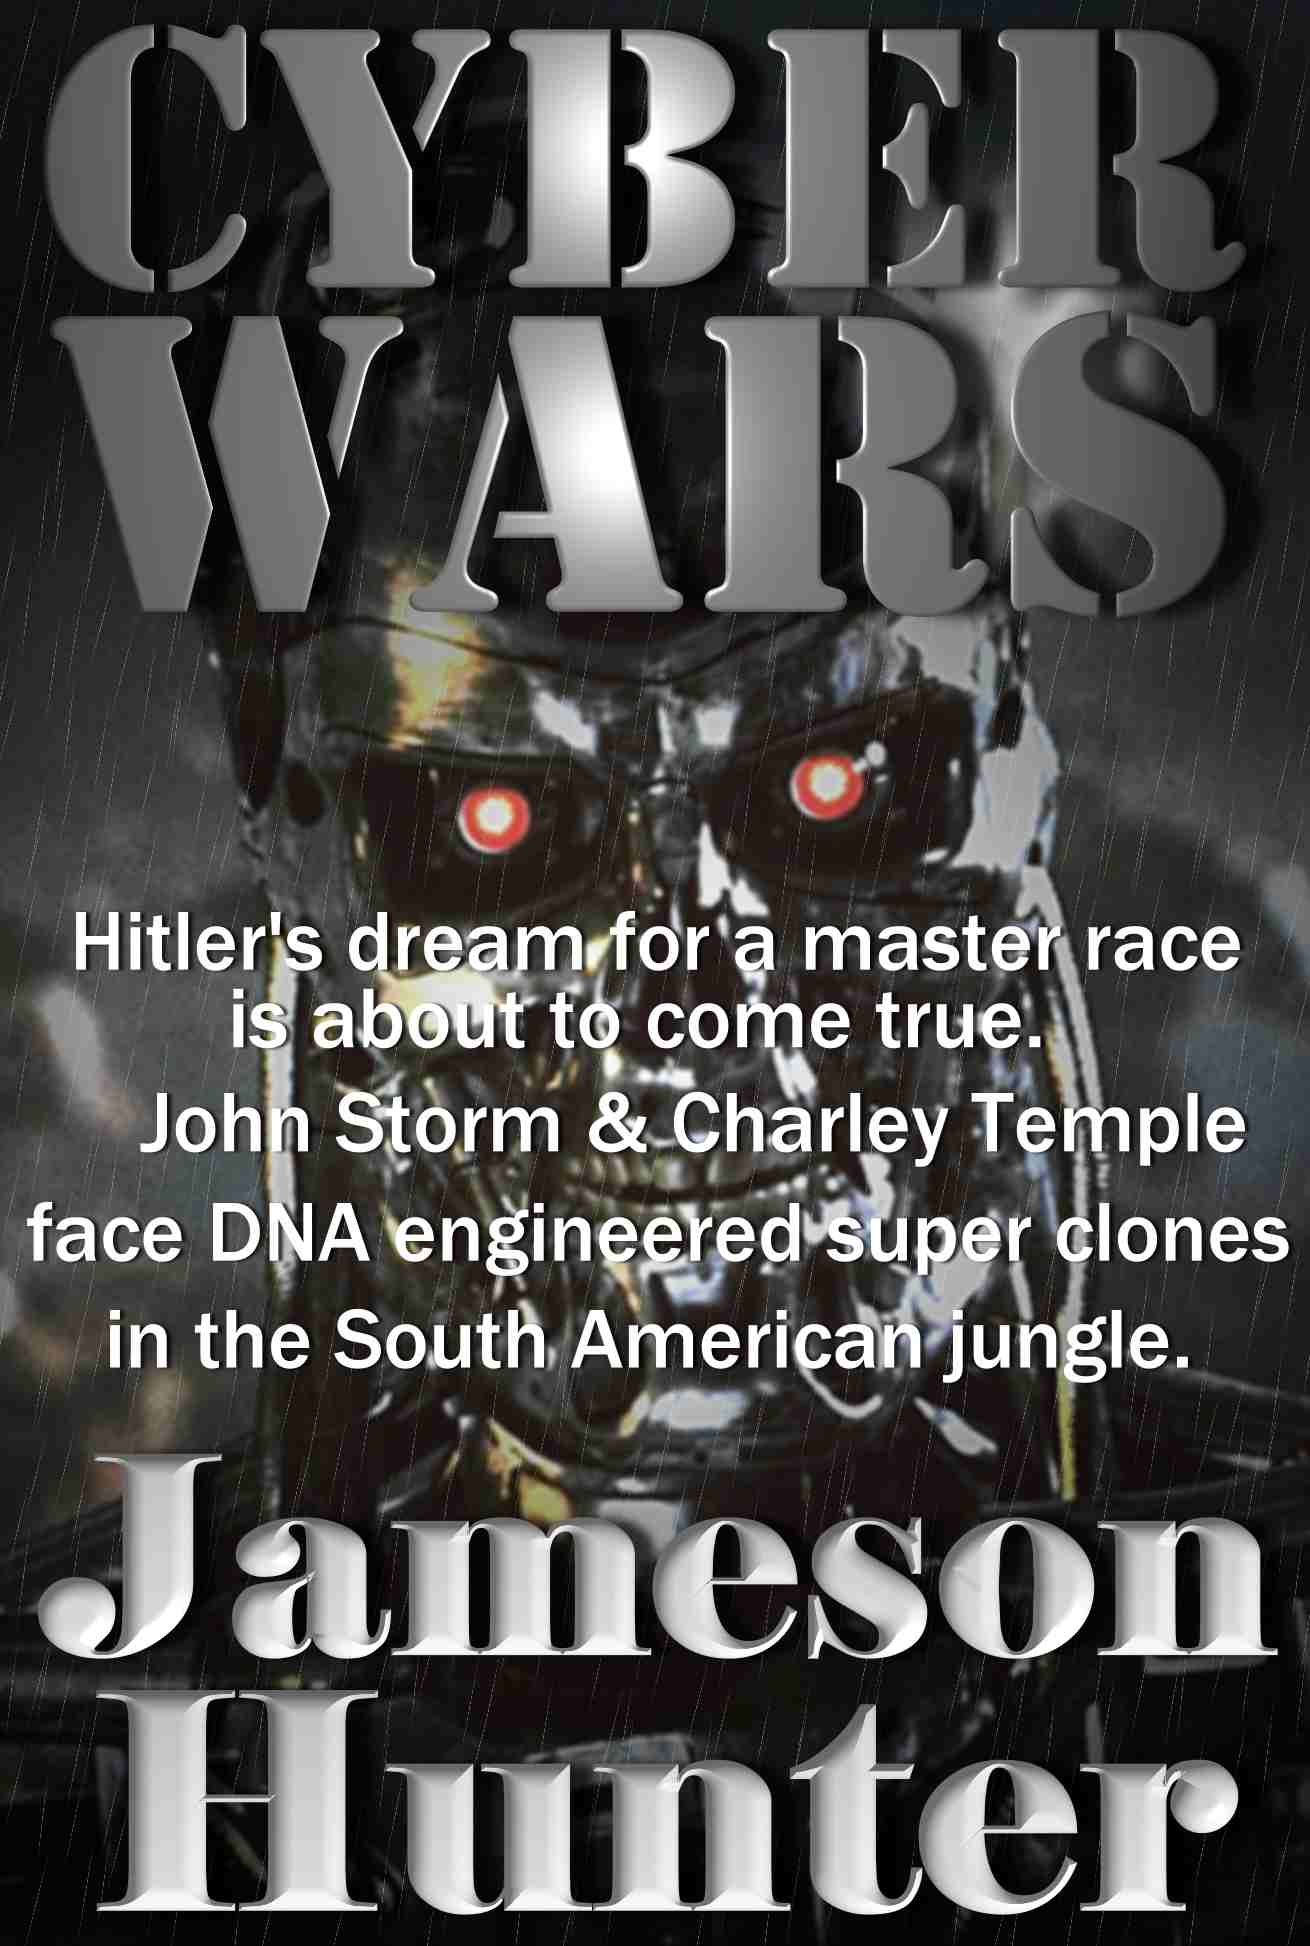 Cyber Wars, the fourth reich and master race, warfare